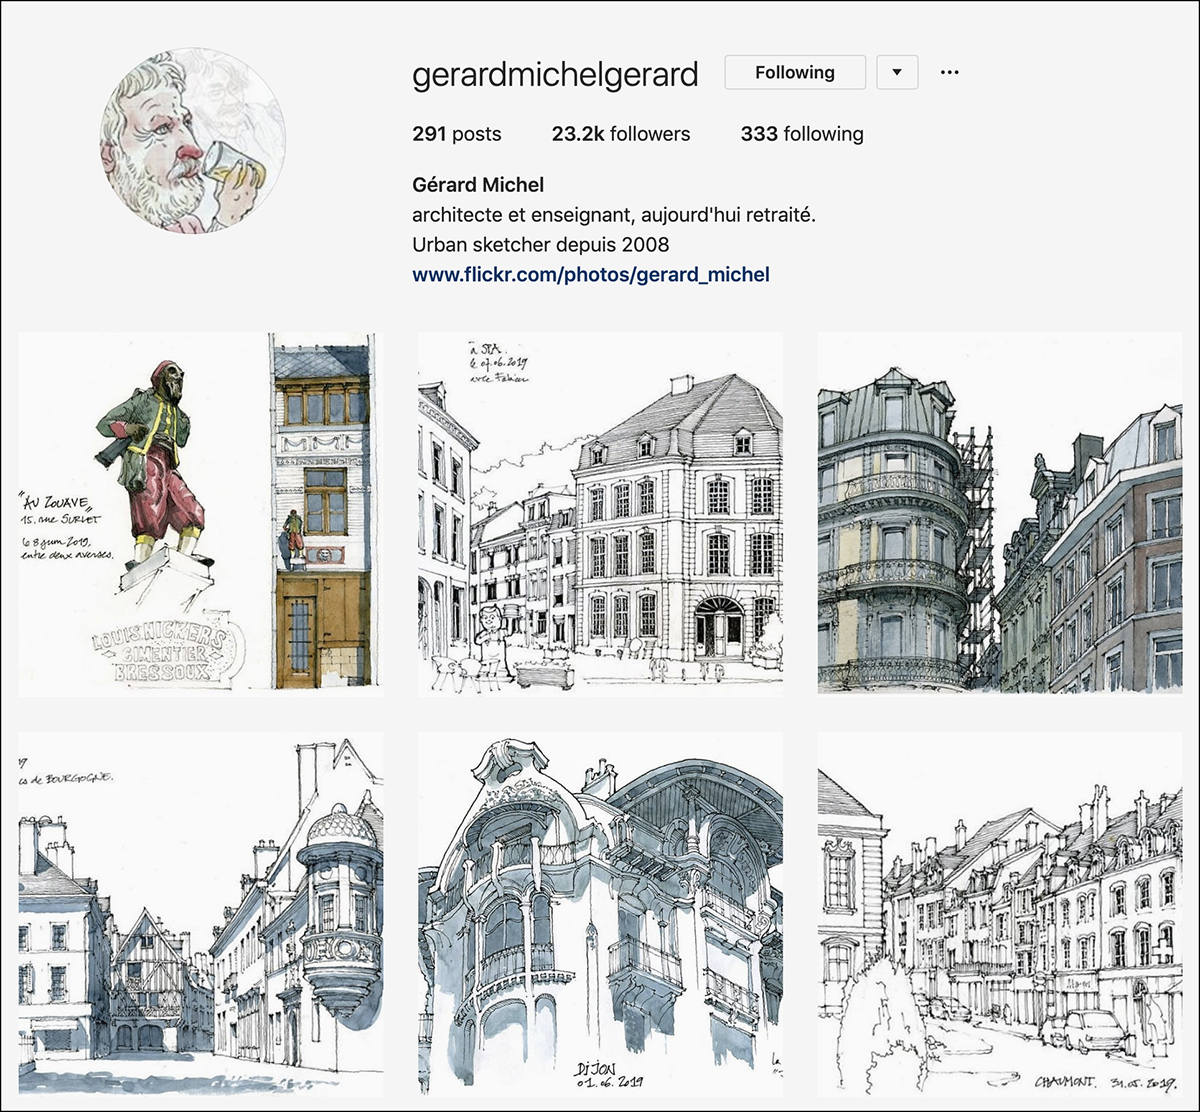 gerarmichelegerard Instagram account - good for sketching